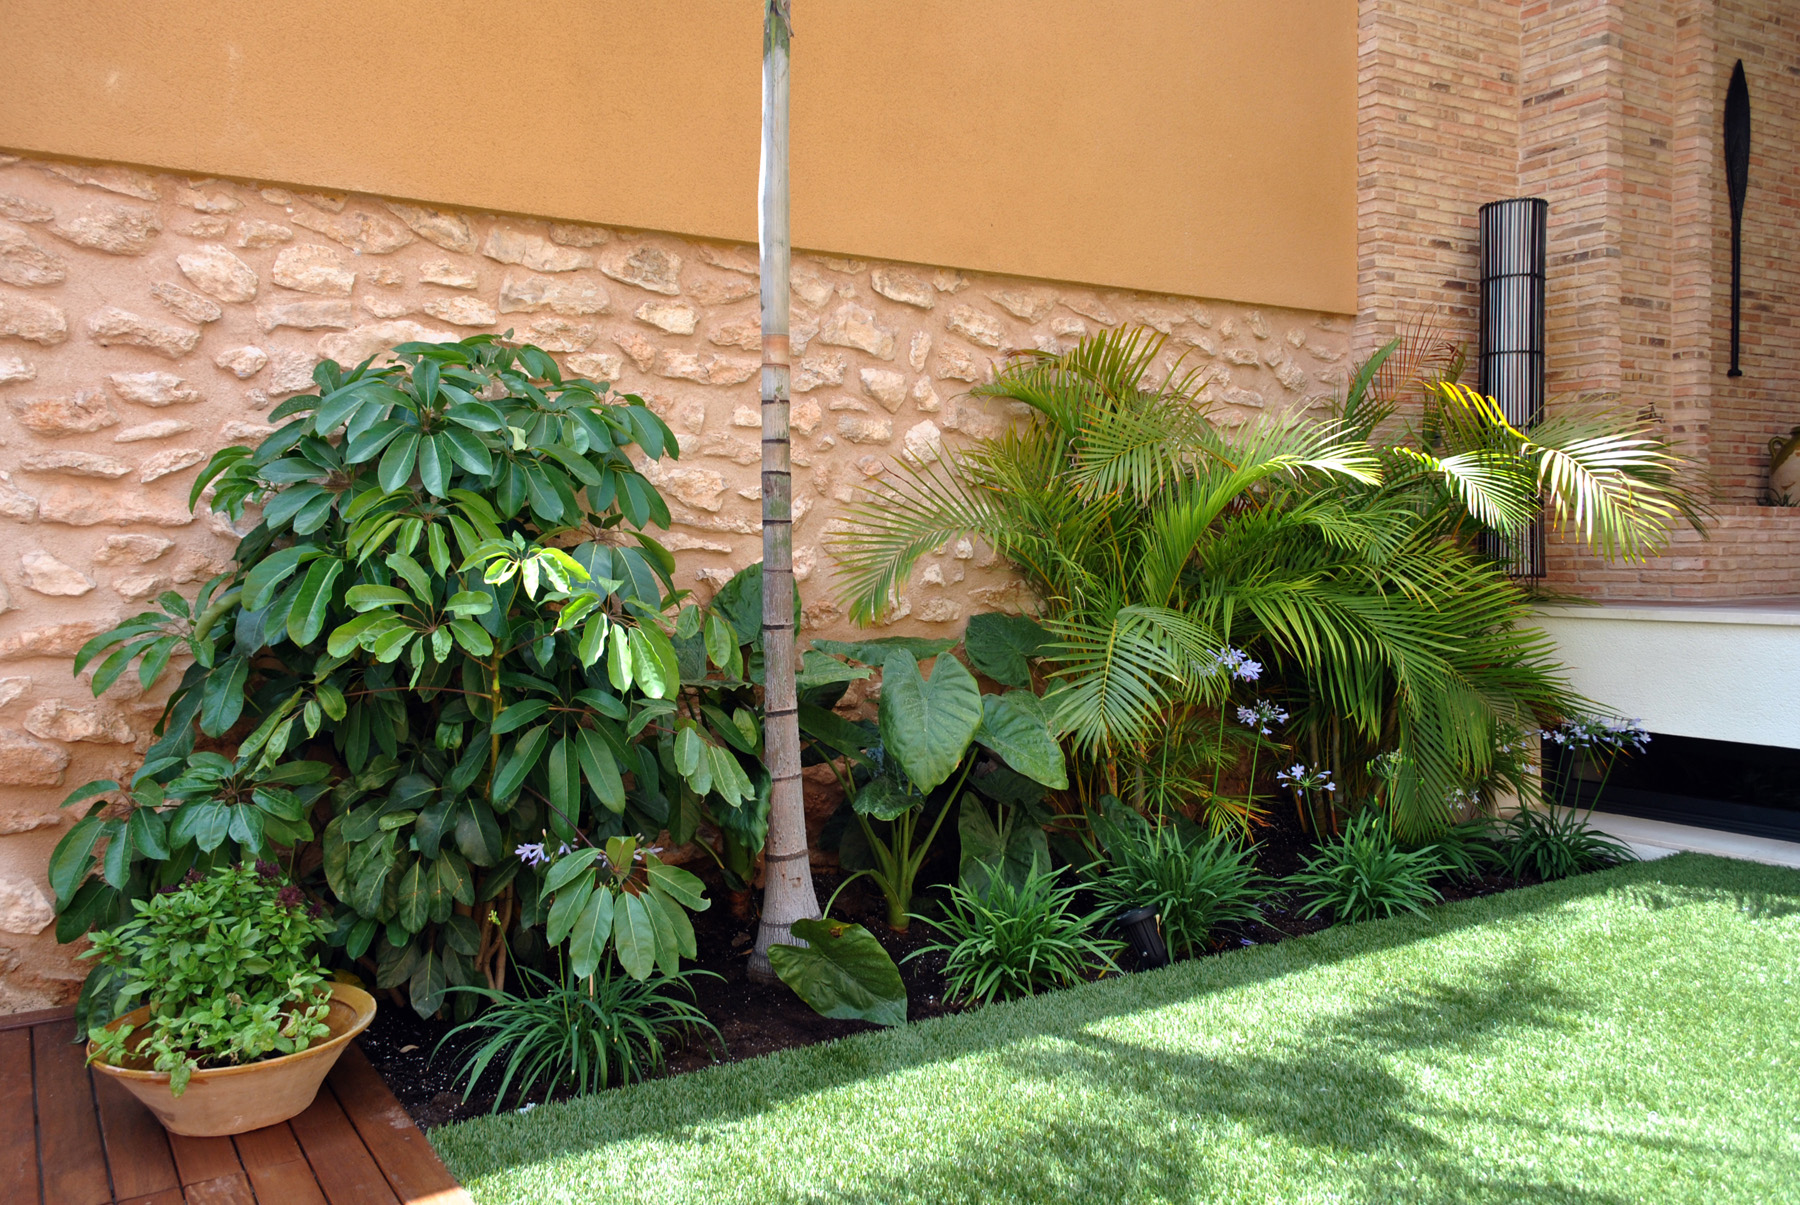 Jardinera con planta tropical david jim nez for Planta arbustos para jardineras